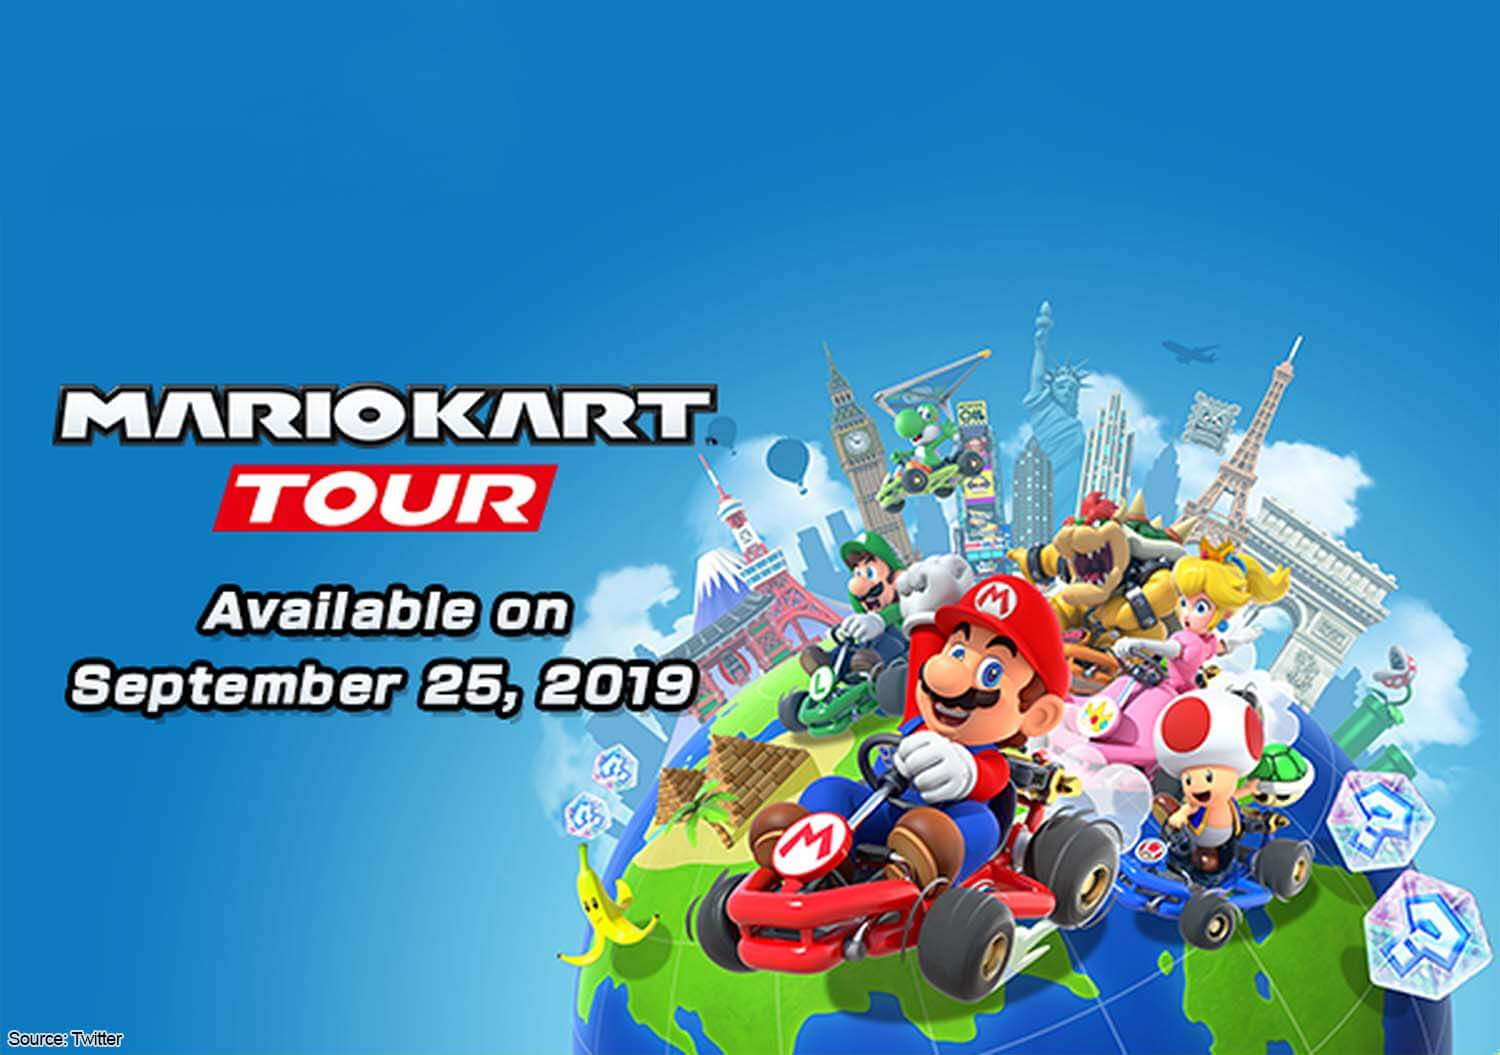 Nintendo officially announces Mario Kart Tour launching on September 25